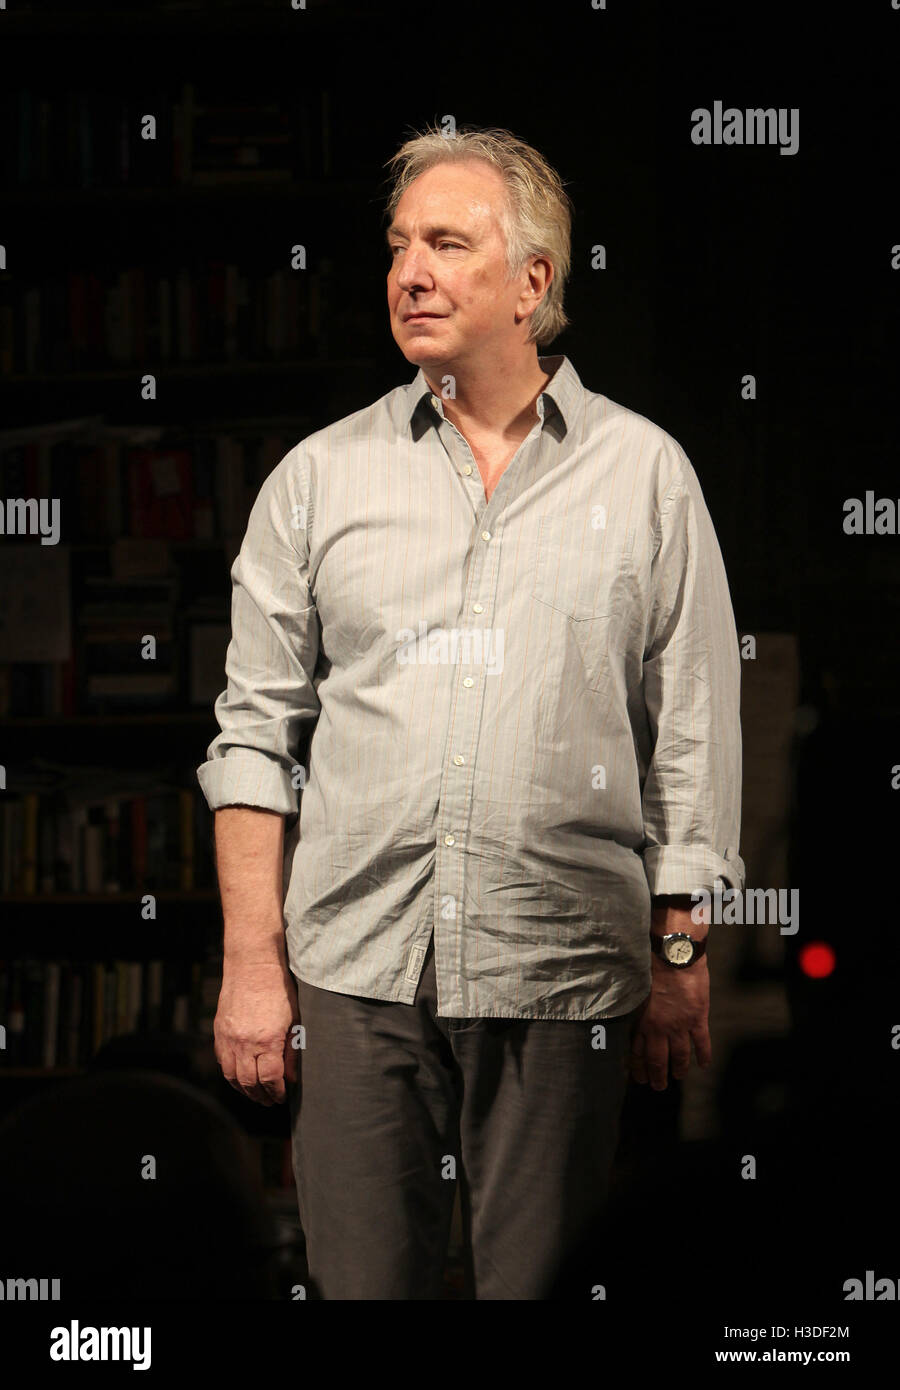 Alan Rickman during the Broadway Opening Night Performance Curtain Call for 'Seminar' at the Golden Theatre - Stock Image